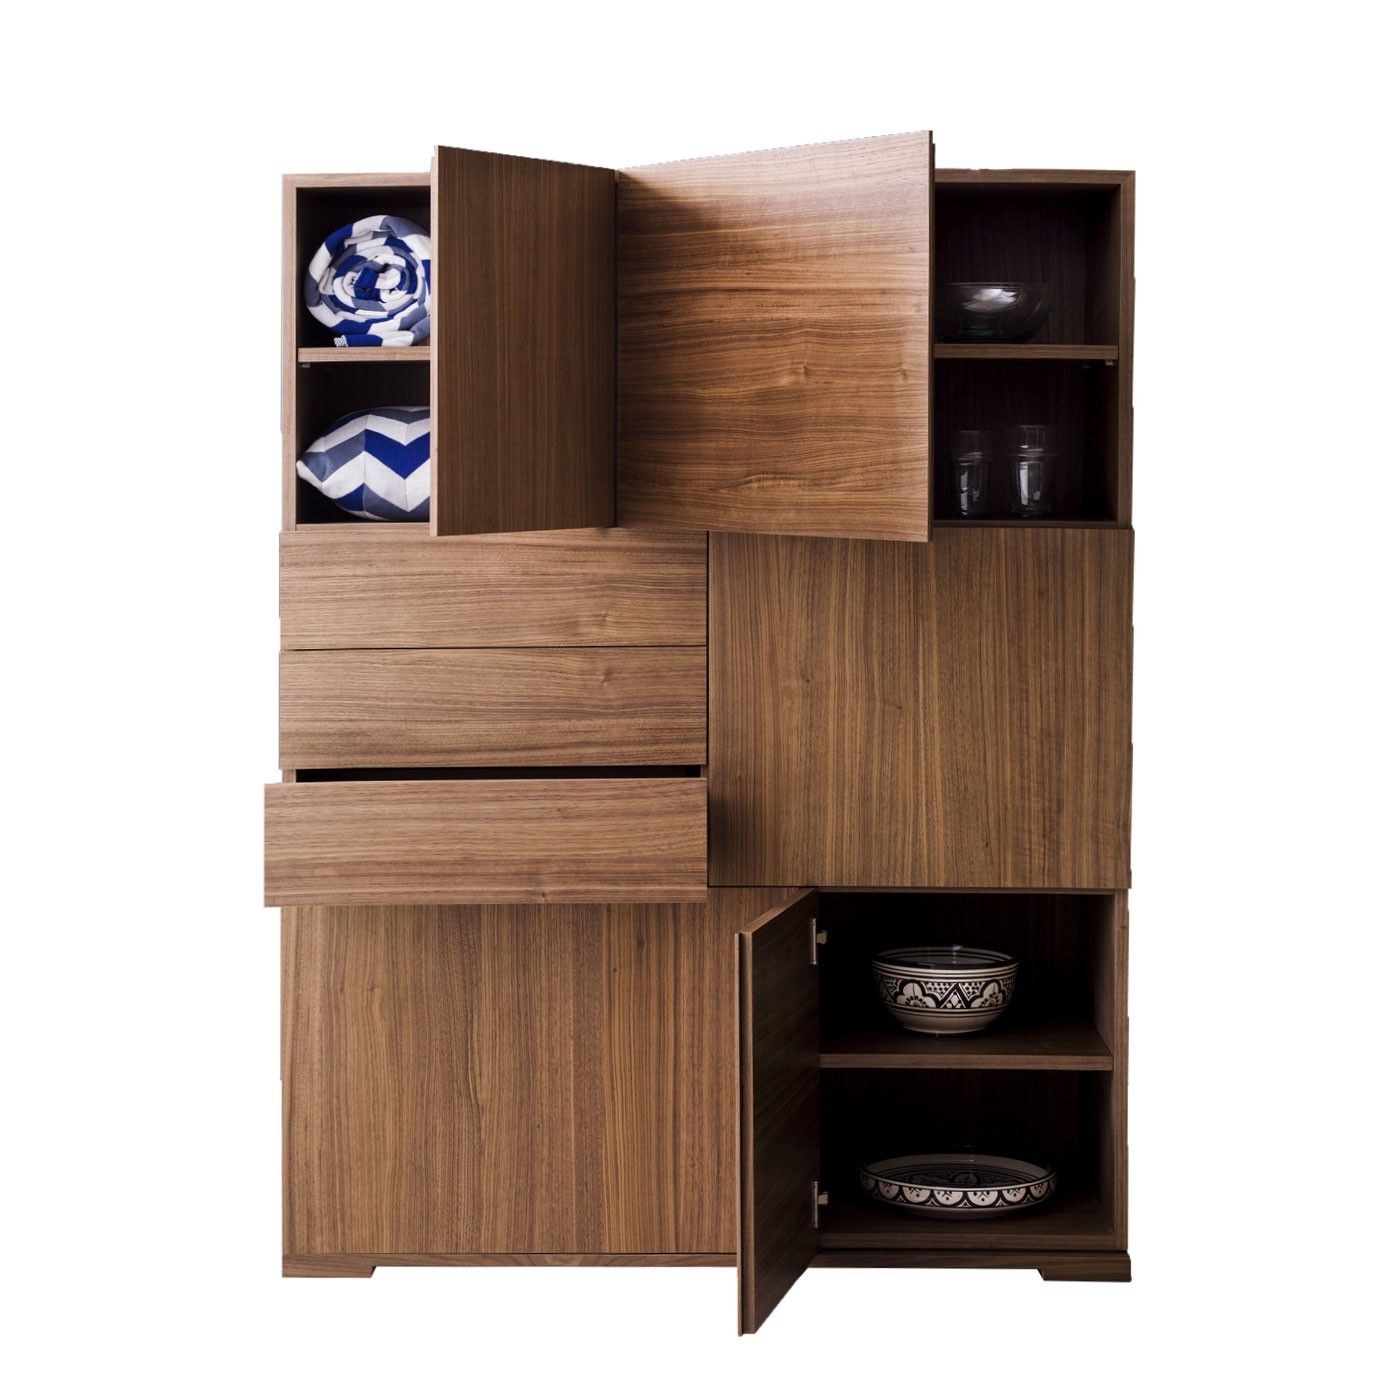 Check Tall Storage Unit Latest Furniture Designs Living Room